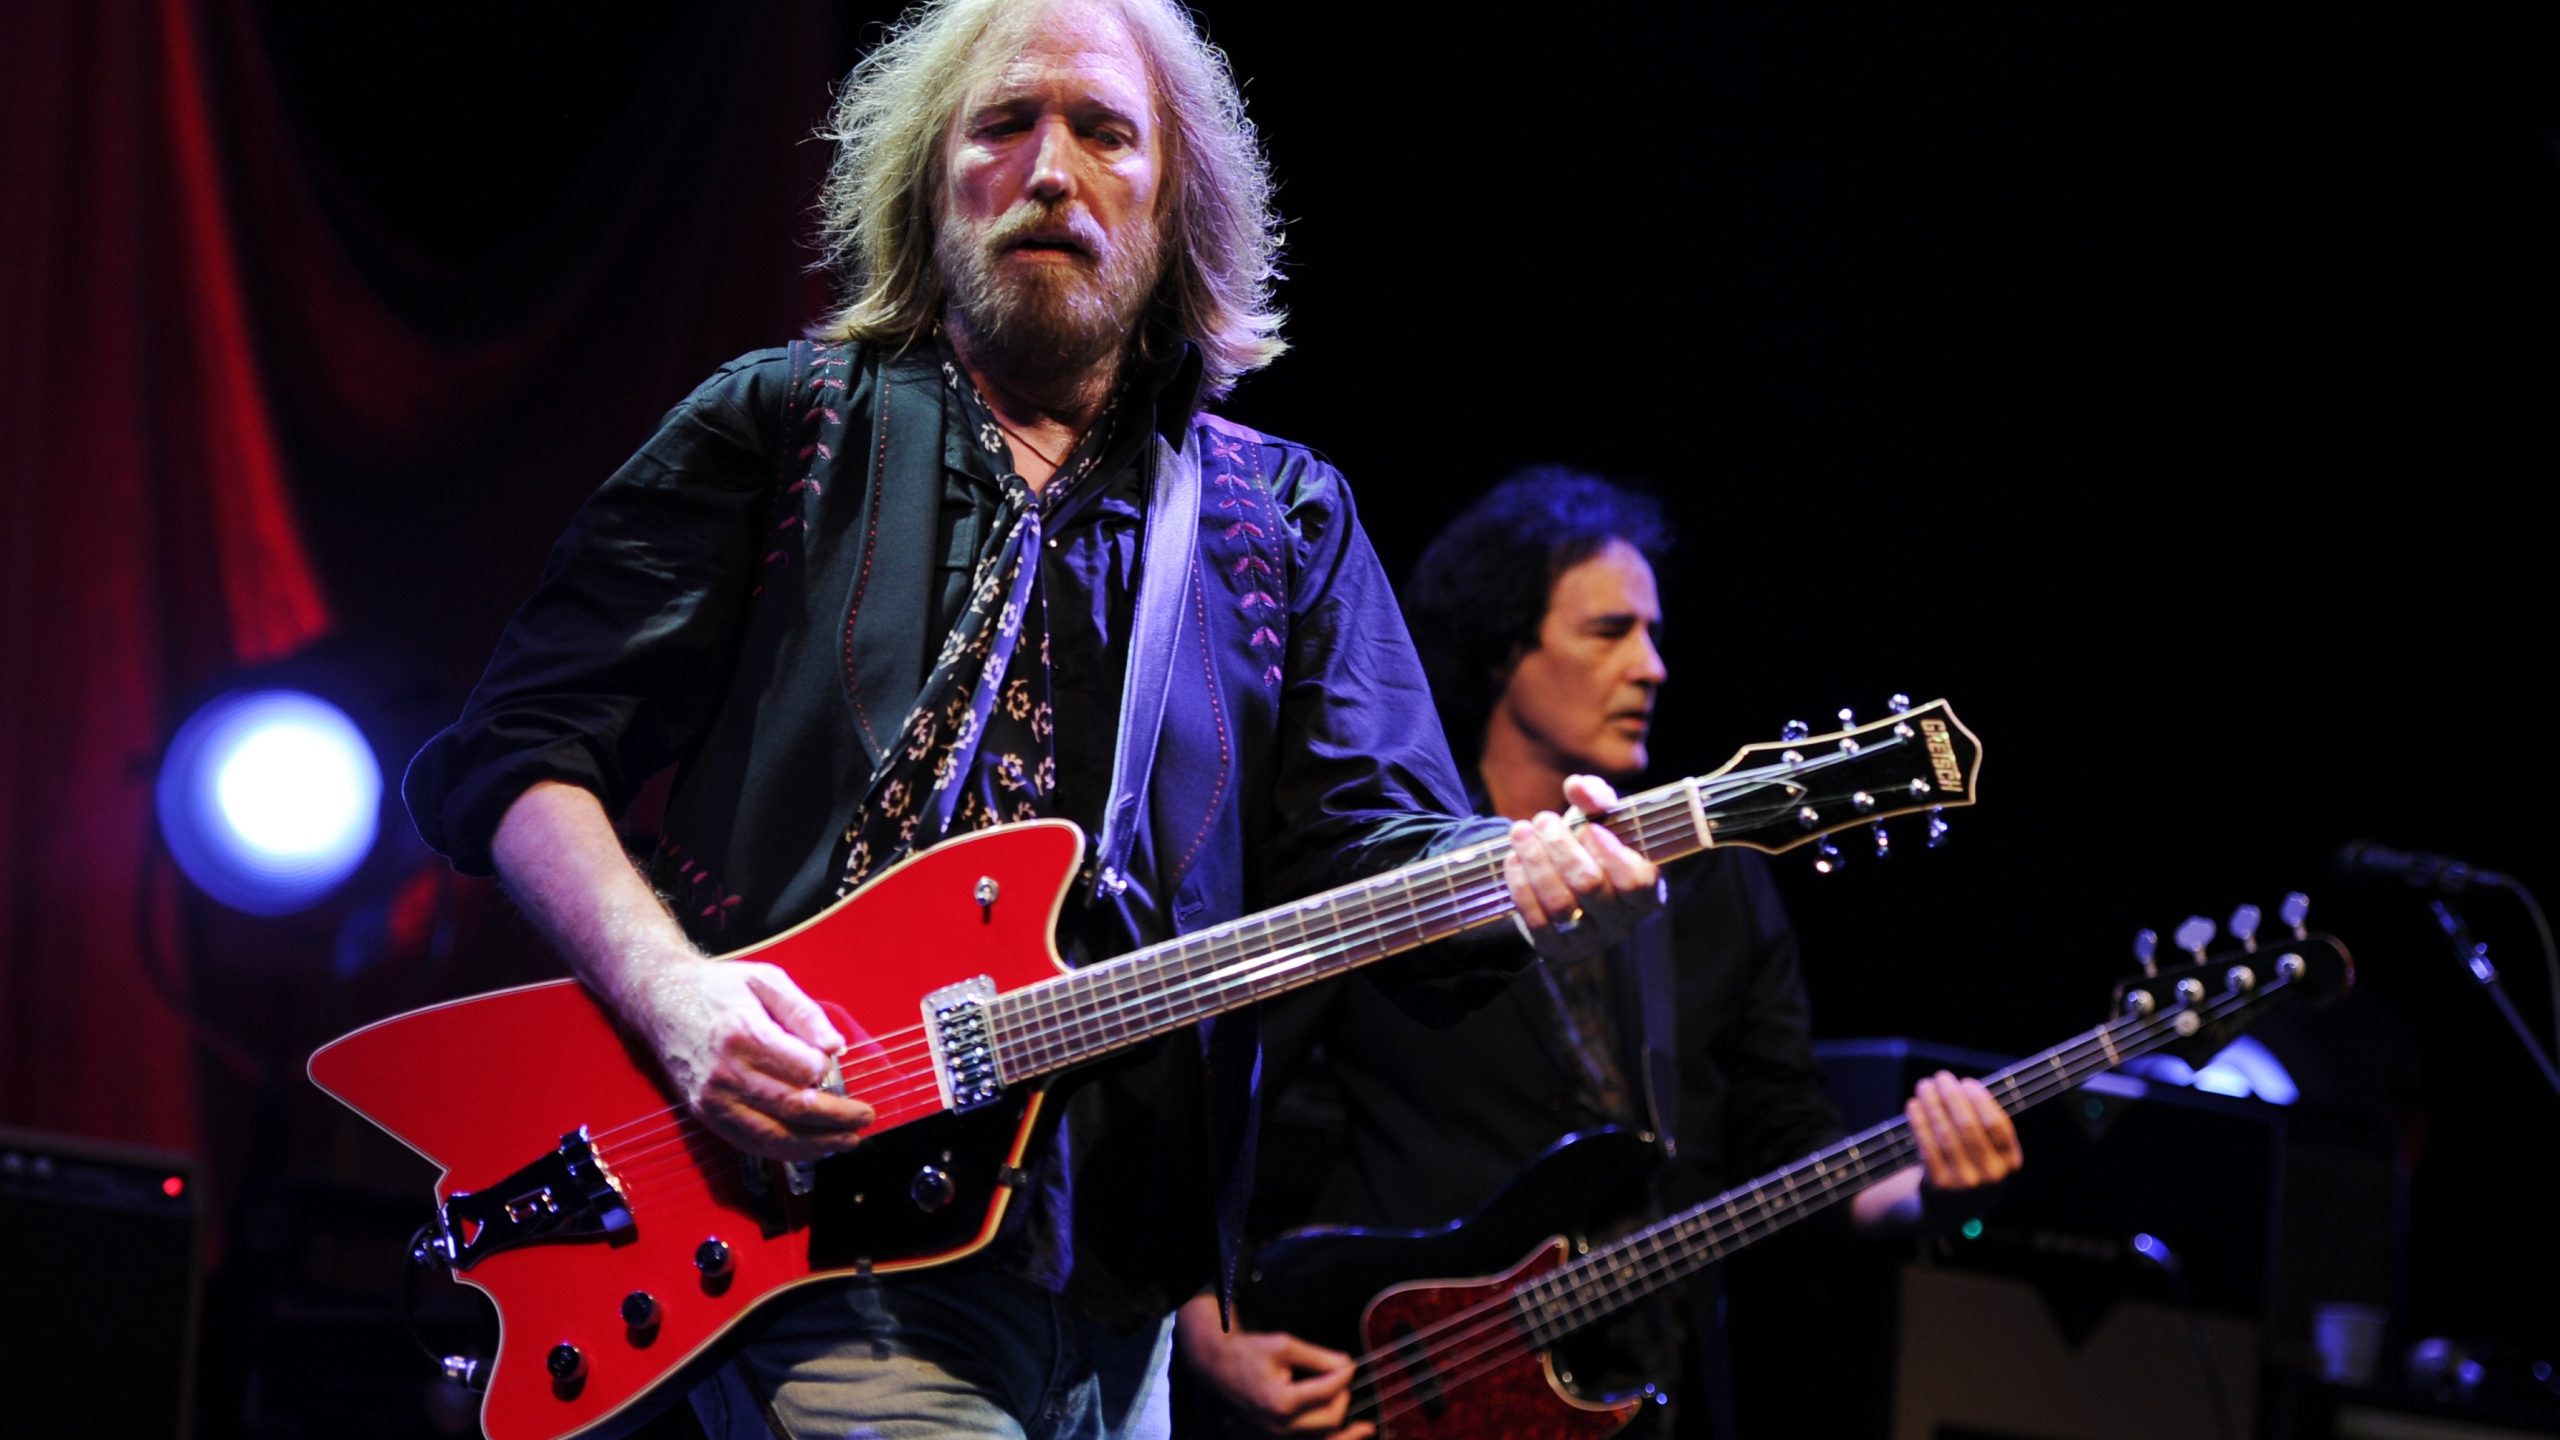 Tom Petty And The Heartbreakers Announce Tour Tampa Show